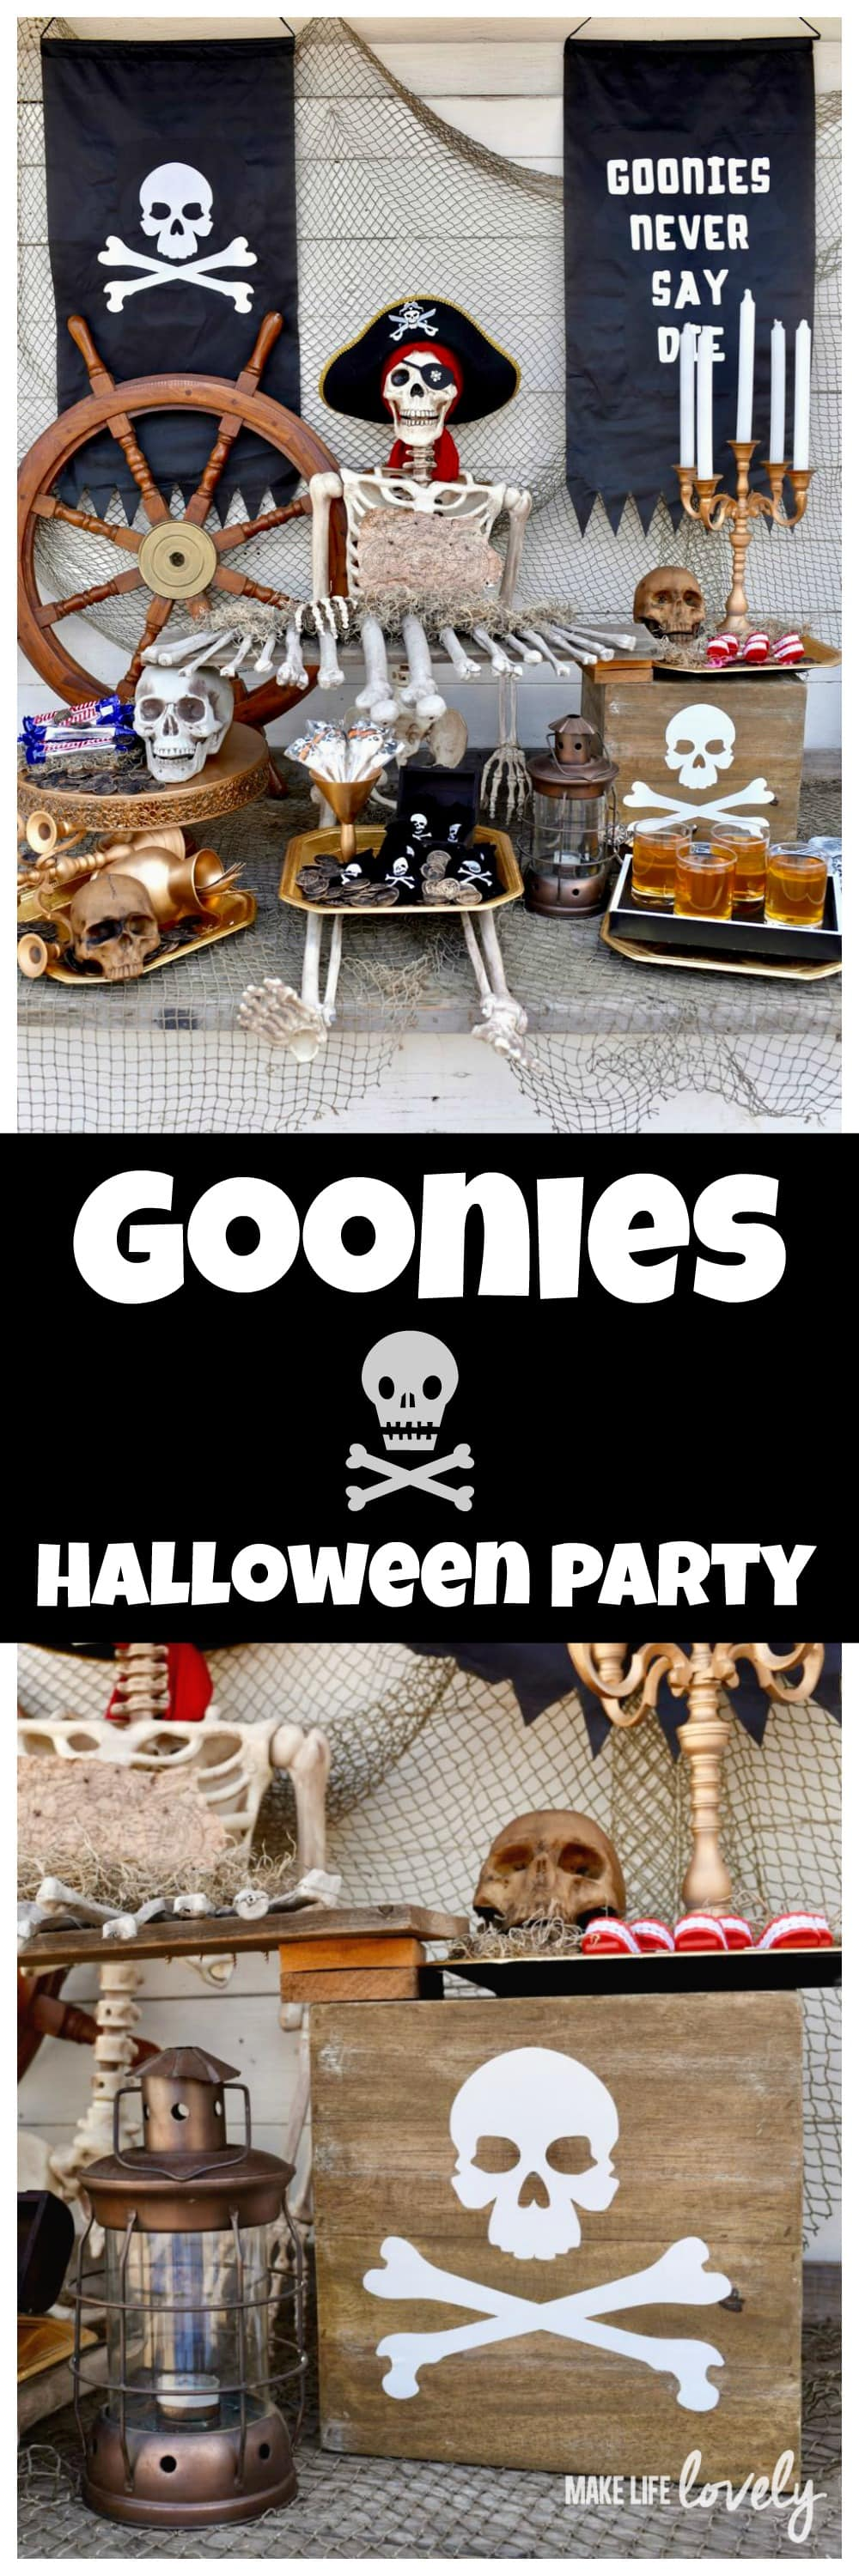 Goonies Halloween Party and Cricut Maker + Oriental Trading